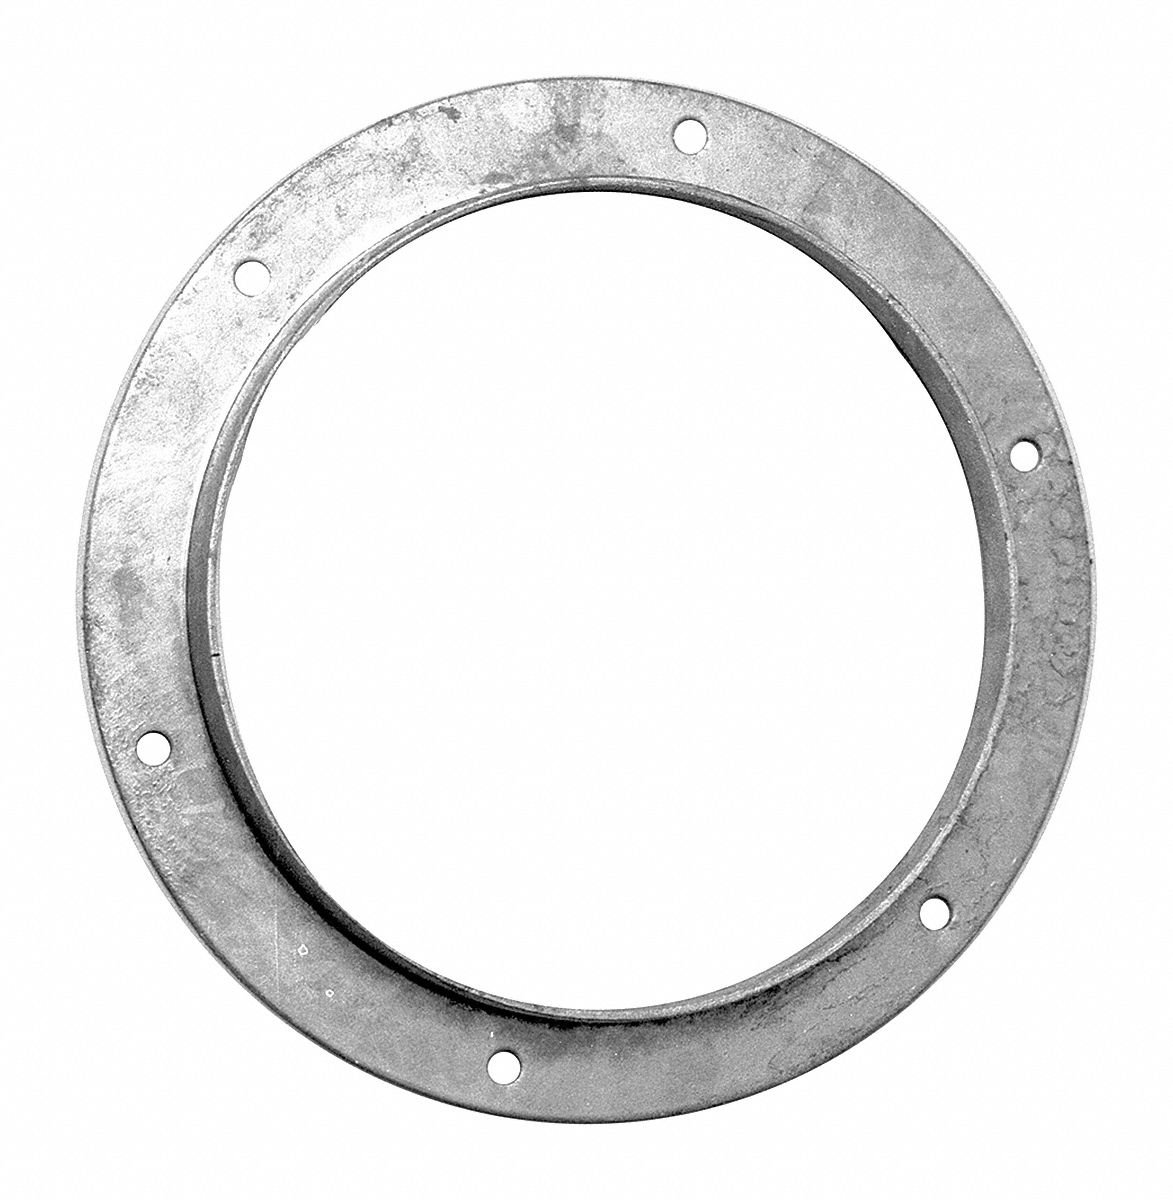 Galvanized Steel Angle Flange, 10'' Duct Fitting Diameter, 1-1/4'' Duct Fitting Length